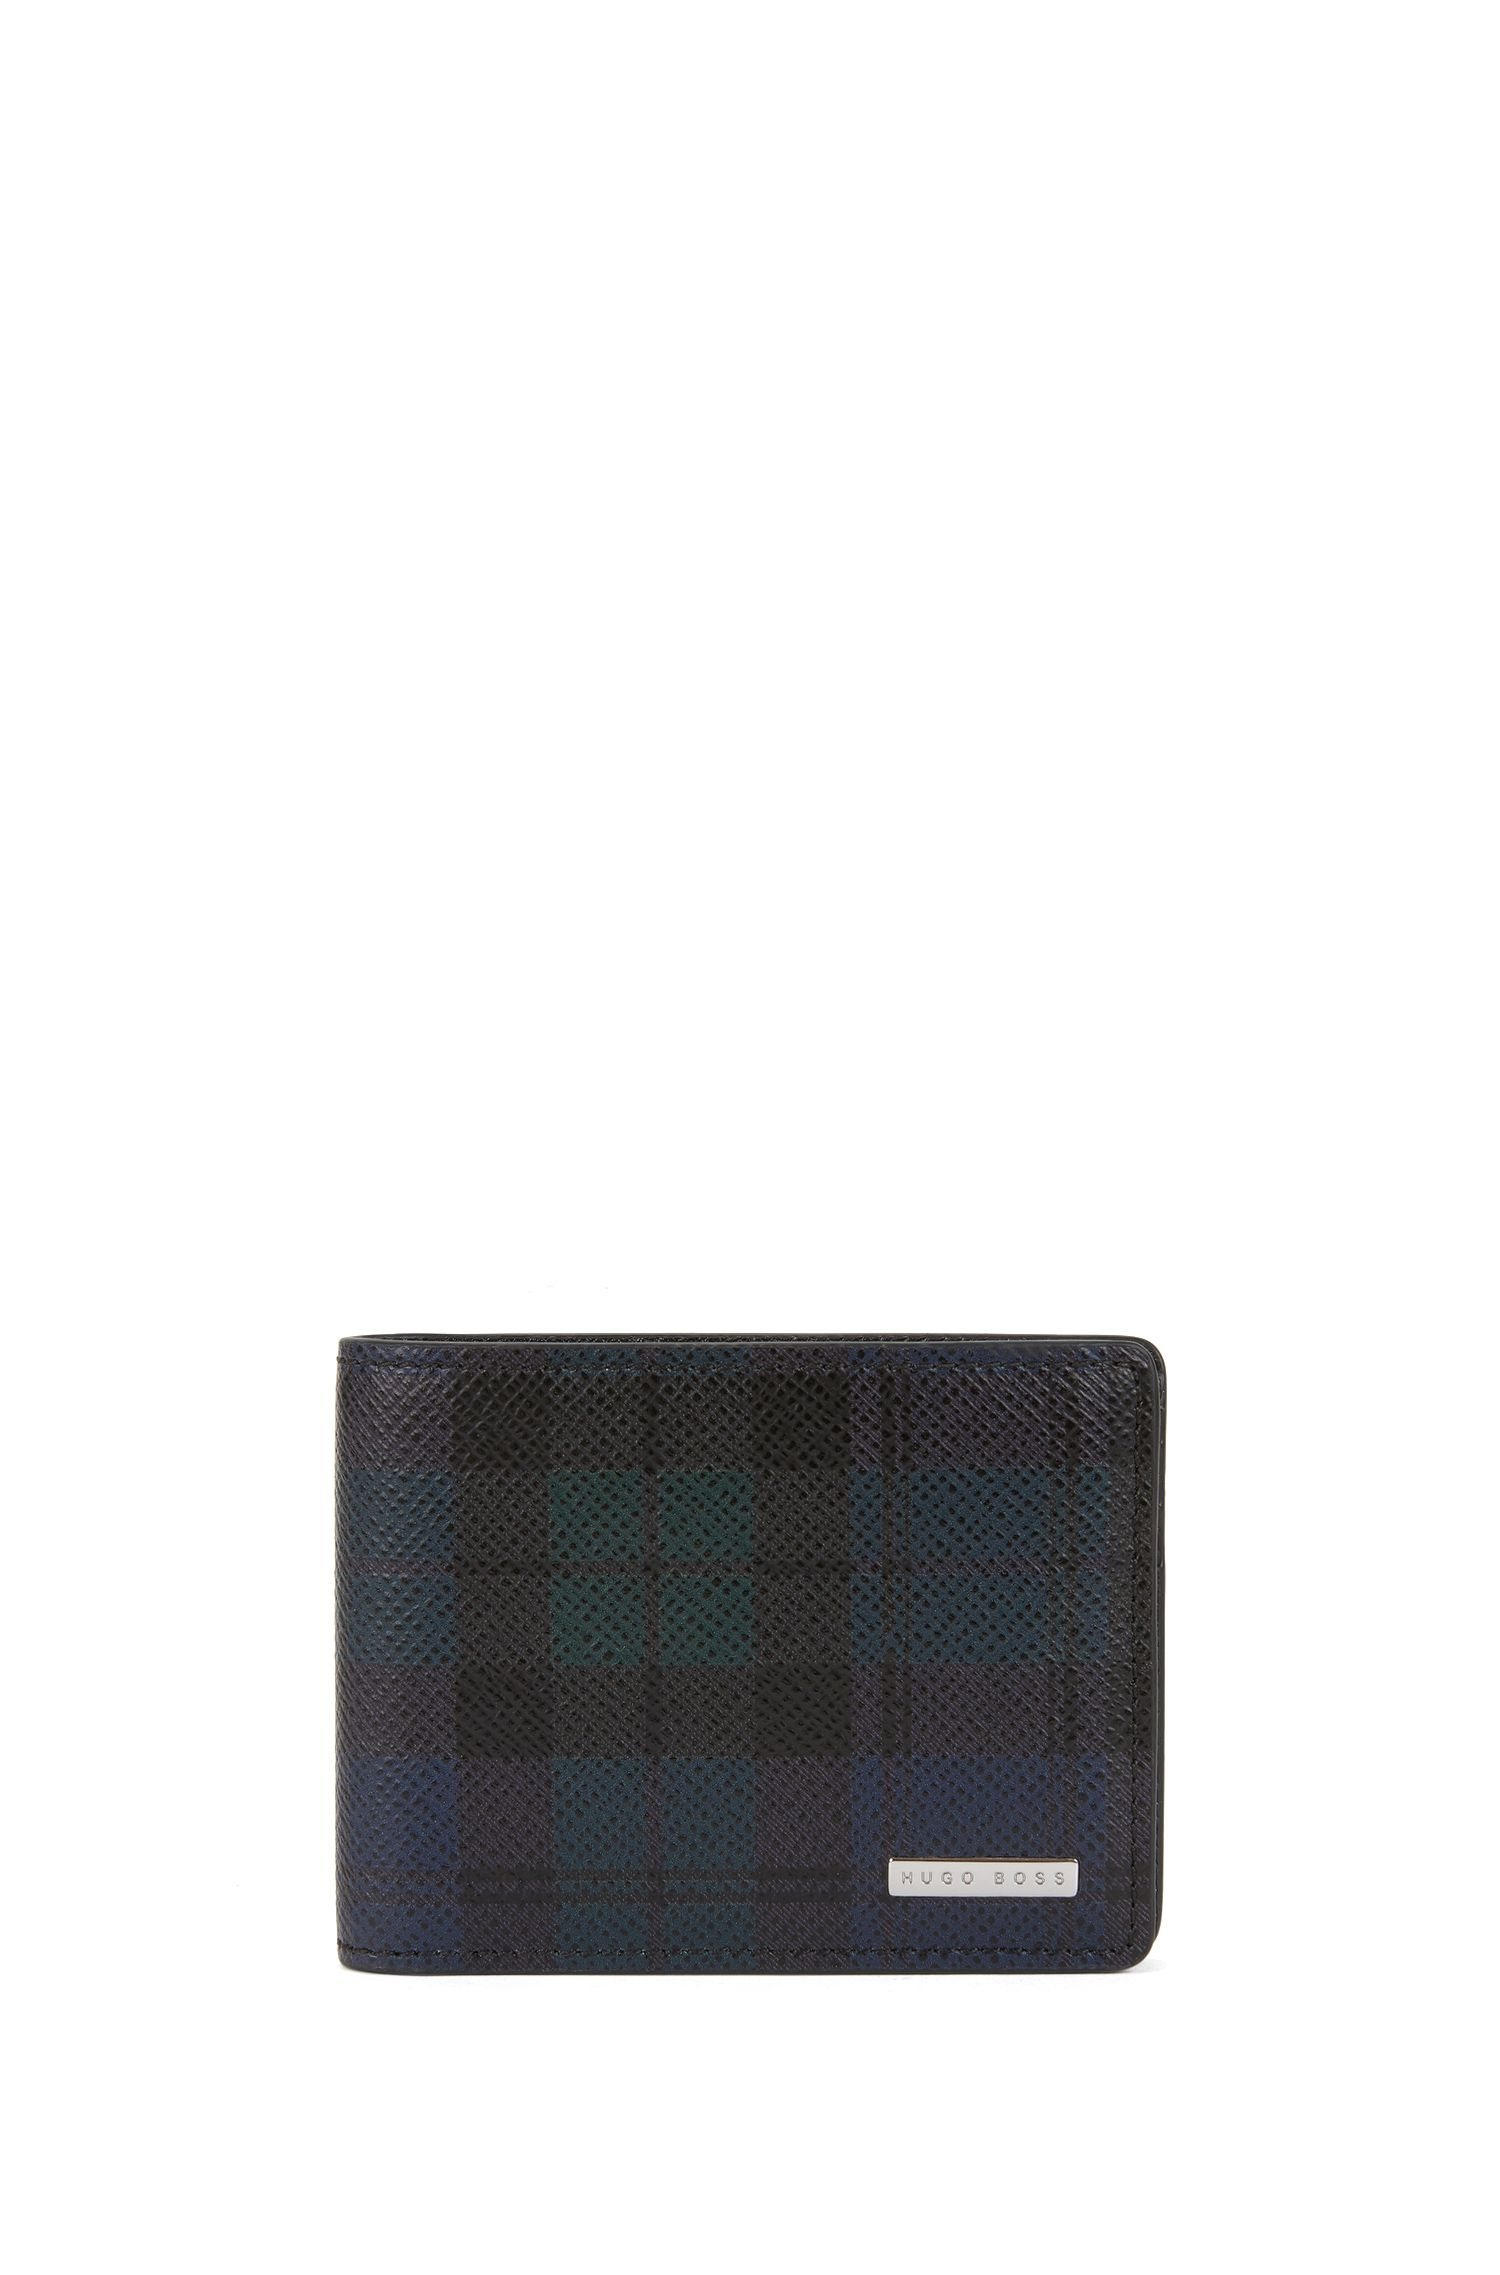 Black Watch Leather Billfold Wallet | Signature BW 6 cc